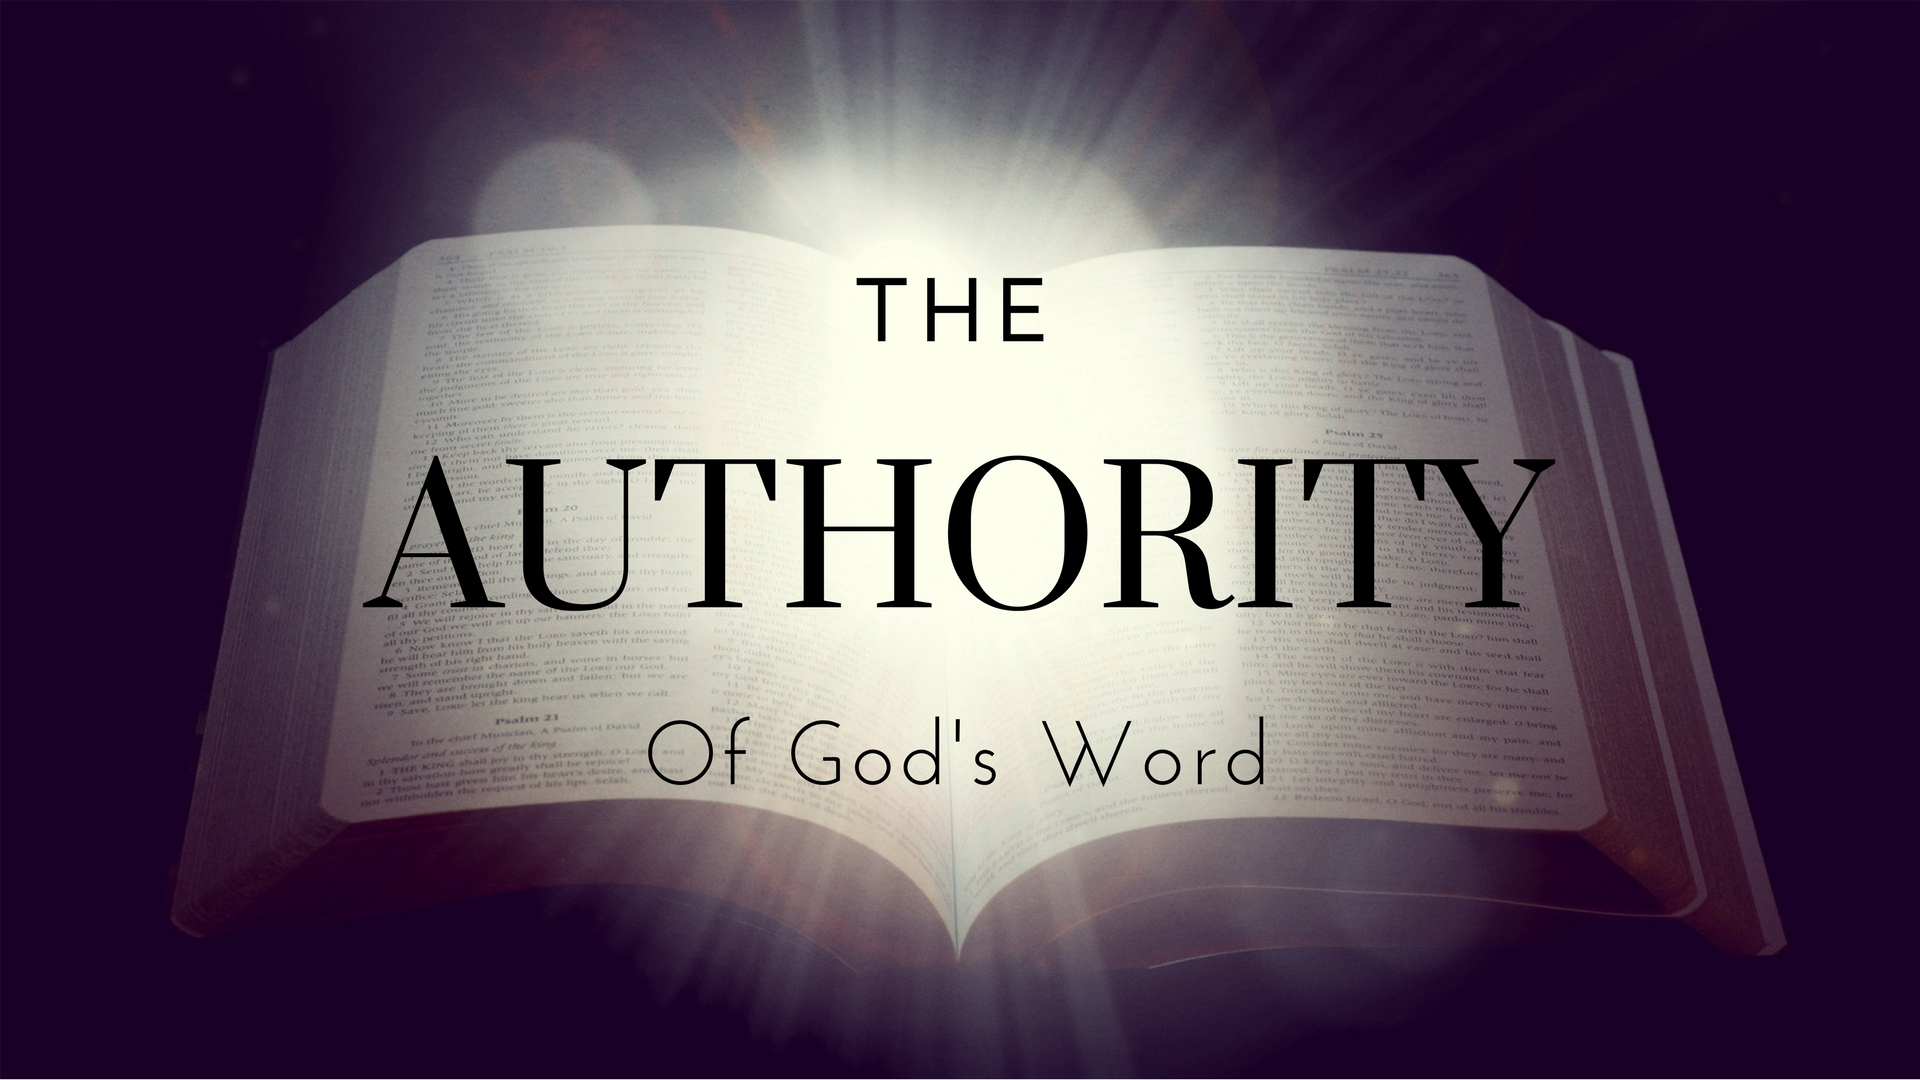 The Authority Of God's Word